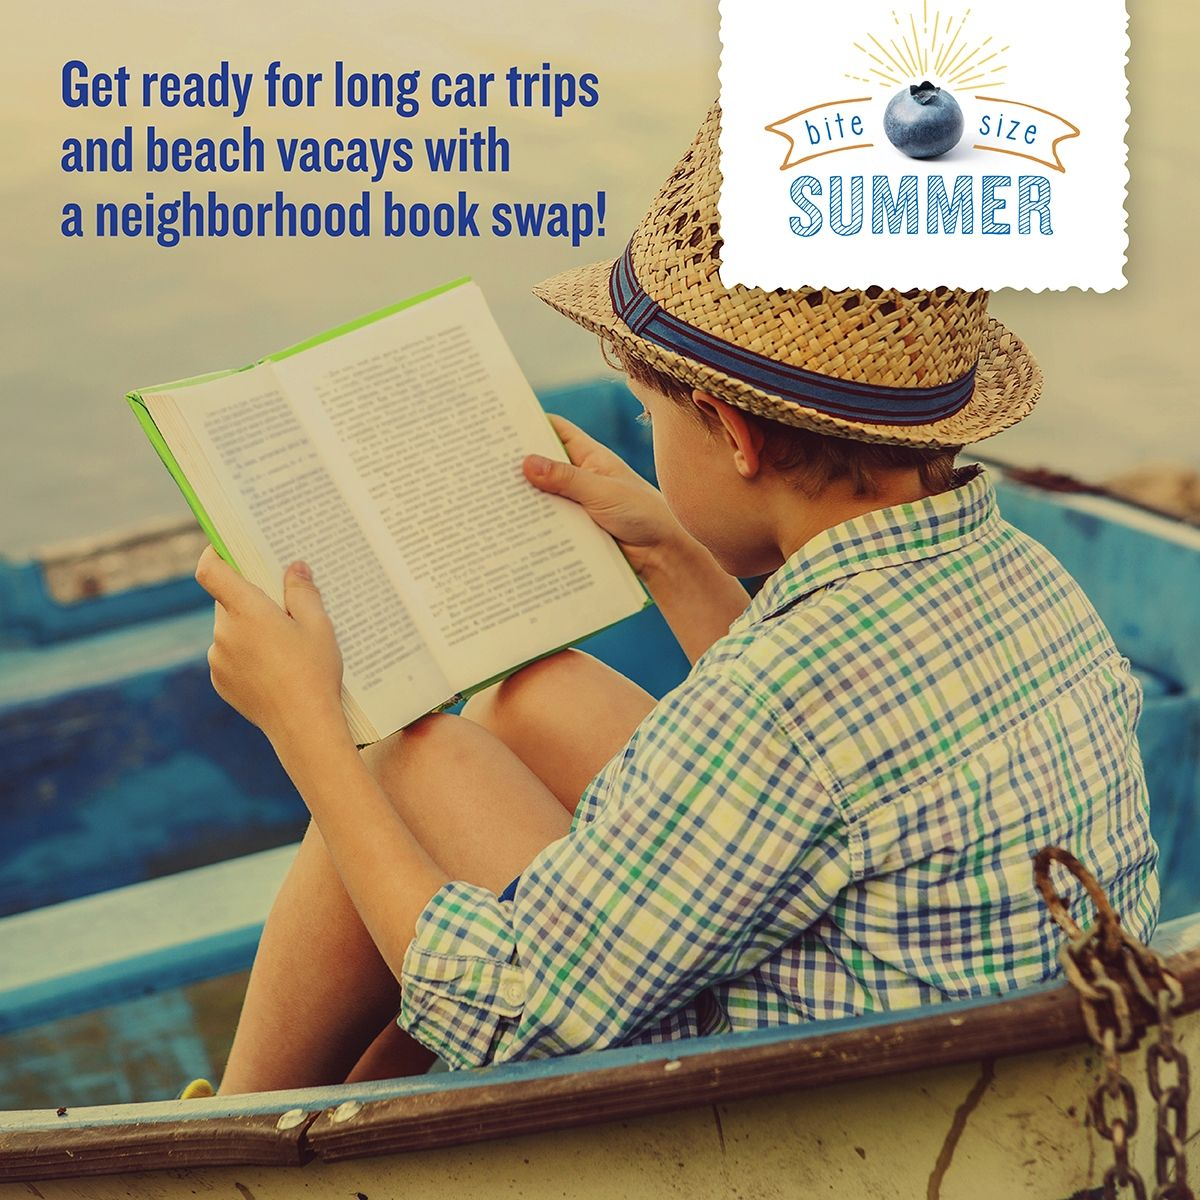 Take turns reading aloud on long road trips. Bonus: try out fun accents and see who giggles first! Bite Size summer moments like this are unforgettable.